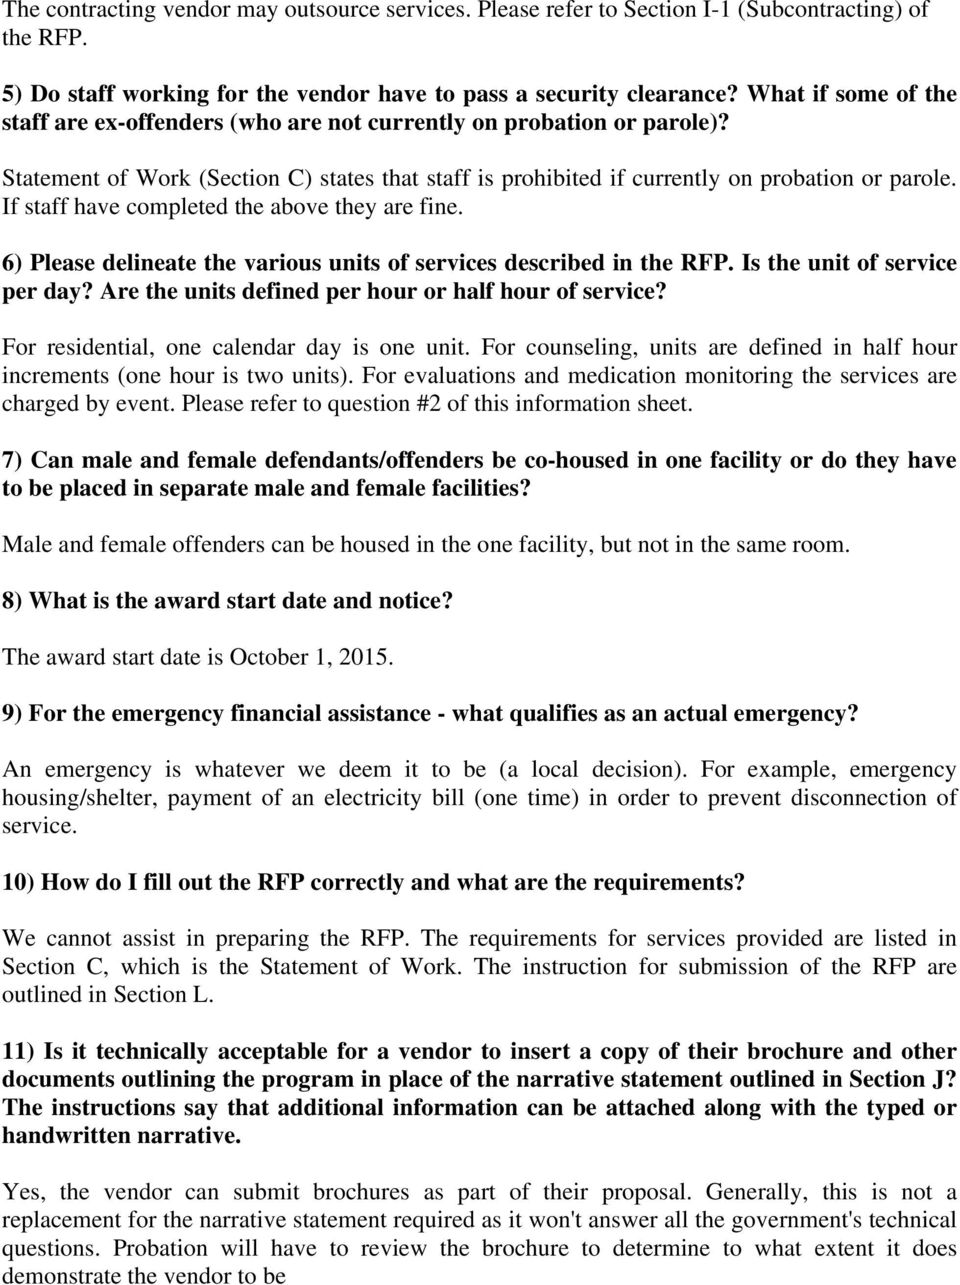 If staff have completed the above they are fine. 6) Please delineate the various units of services described in the RFP. Is the unit of service per day?